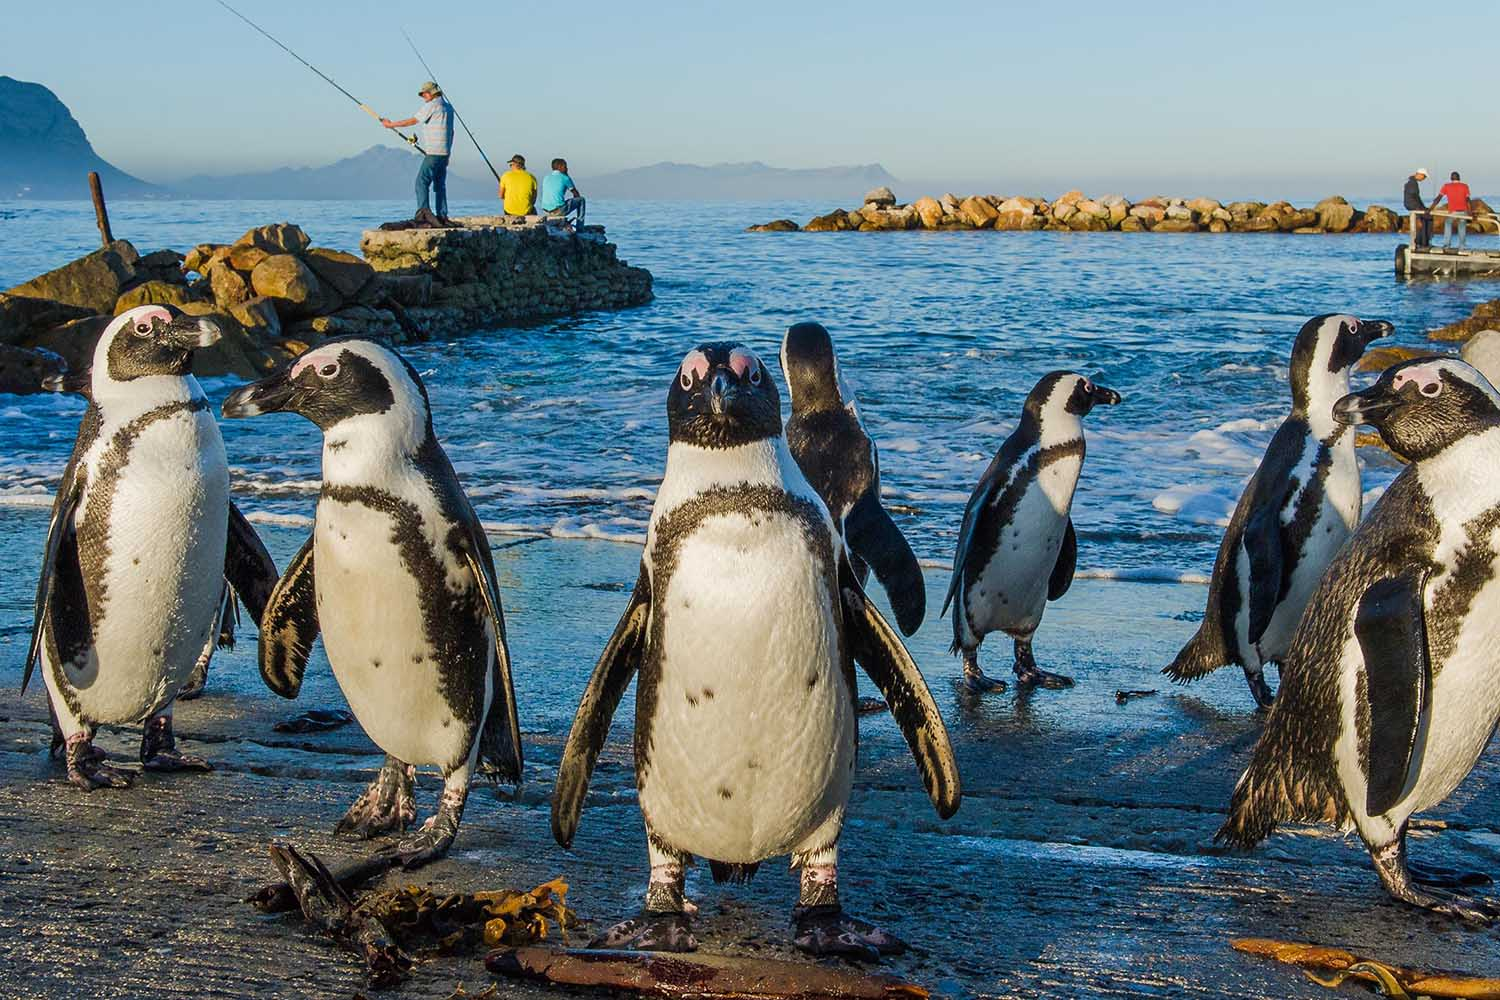 bettys-bay-marine-protected-areas-south-africa-bettys-bay-©PeterChadwick_AfricanConservationPhotographer_web.jpg